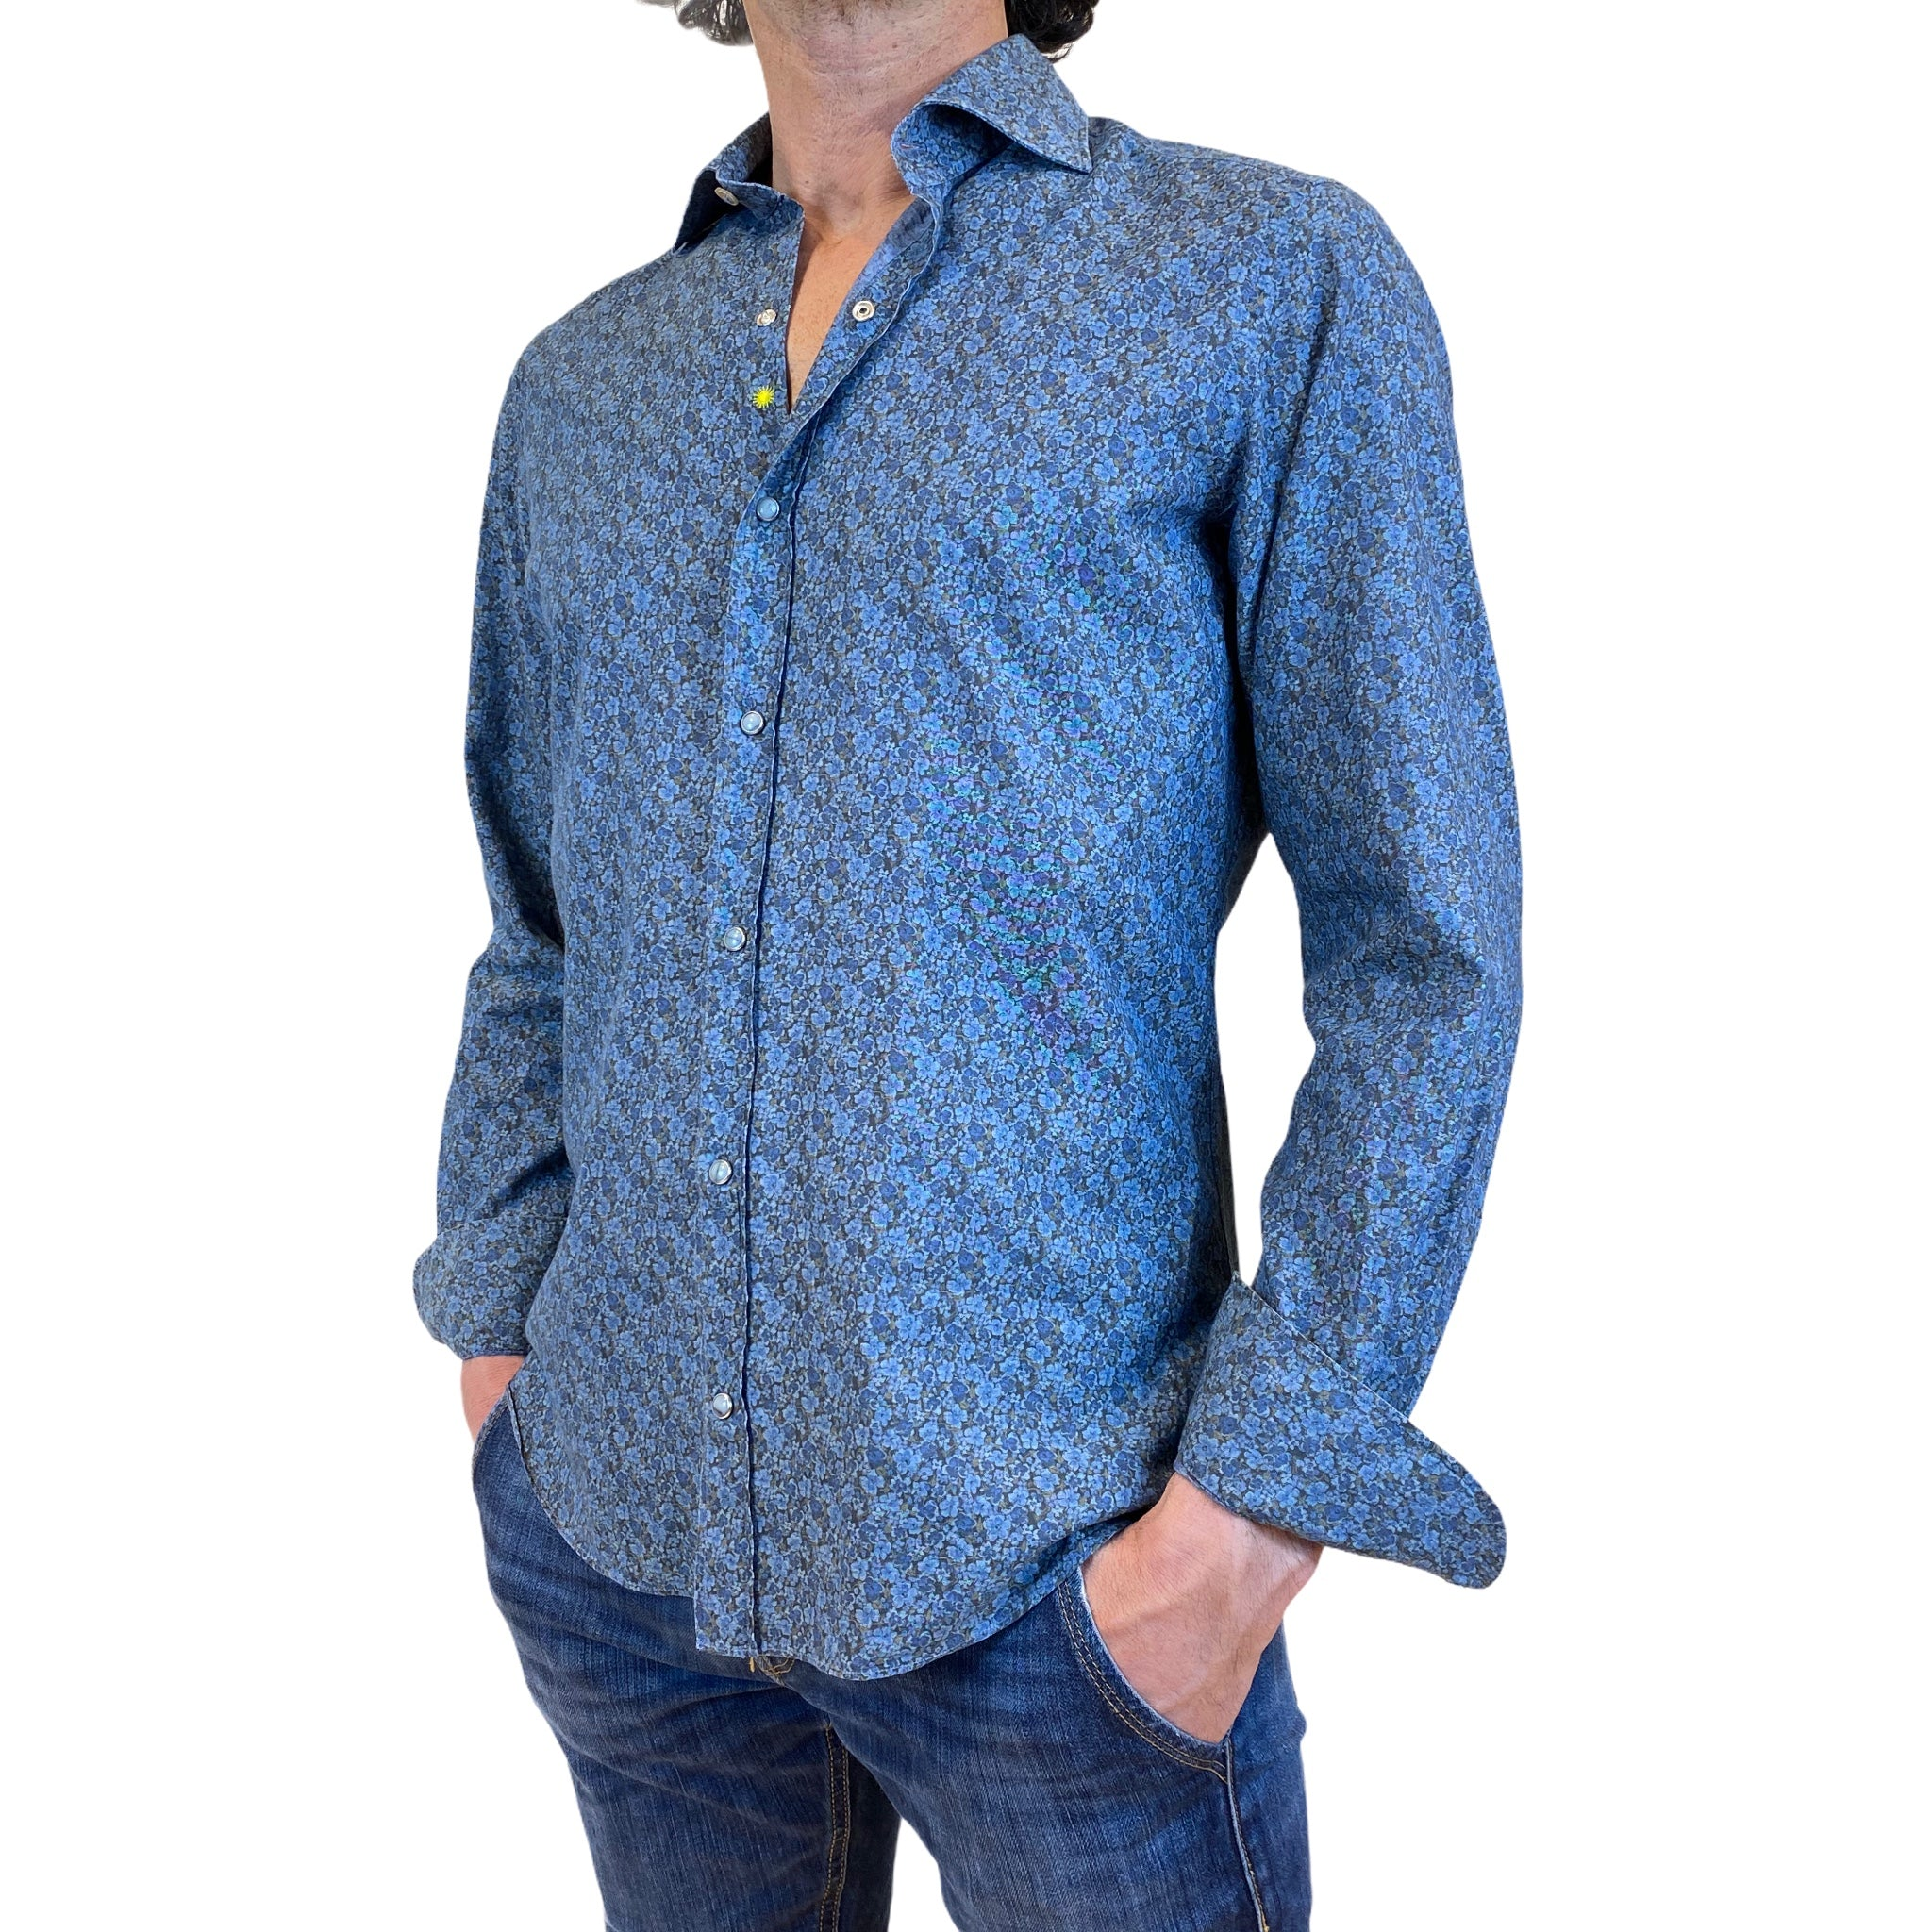 Giannetto Portofino patterned cotton shirt SS21 collection